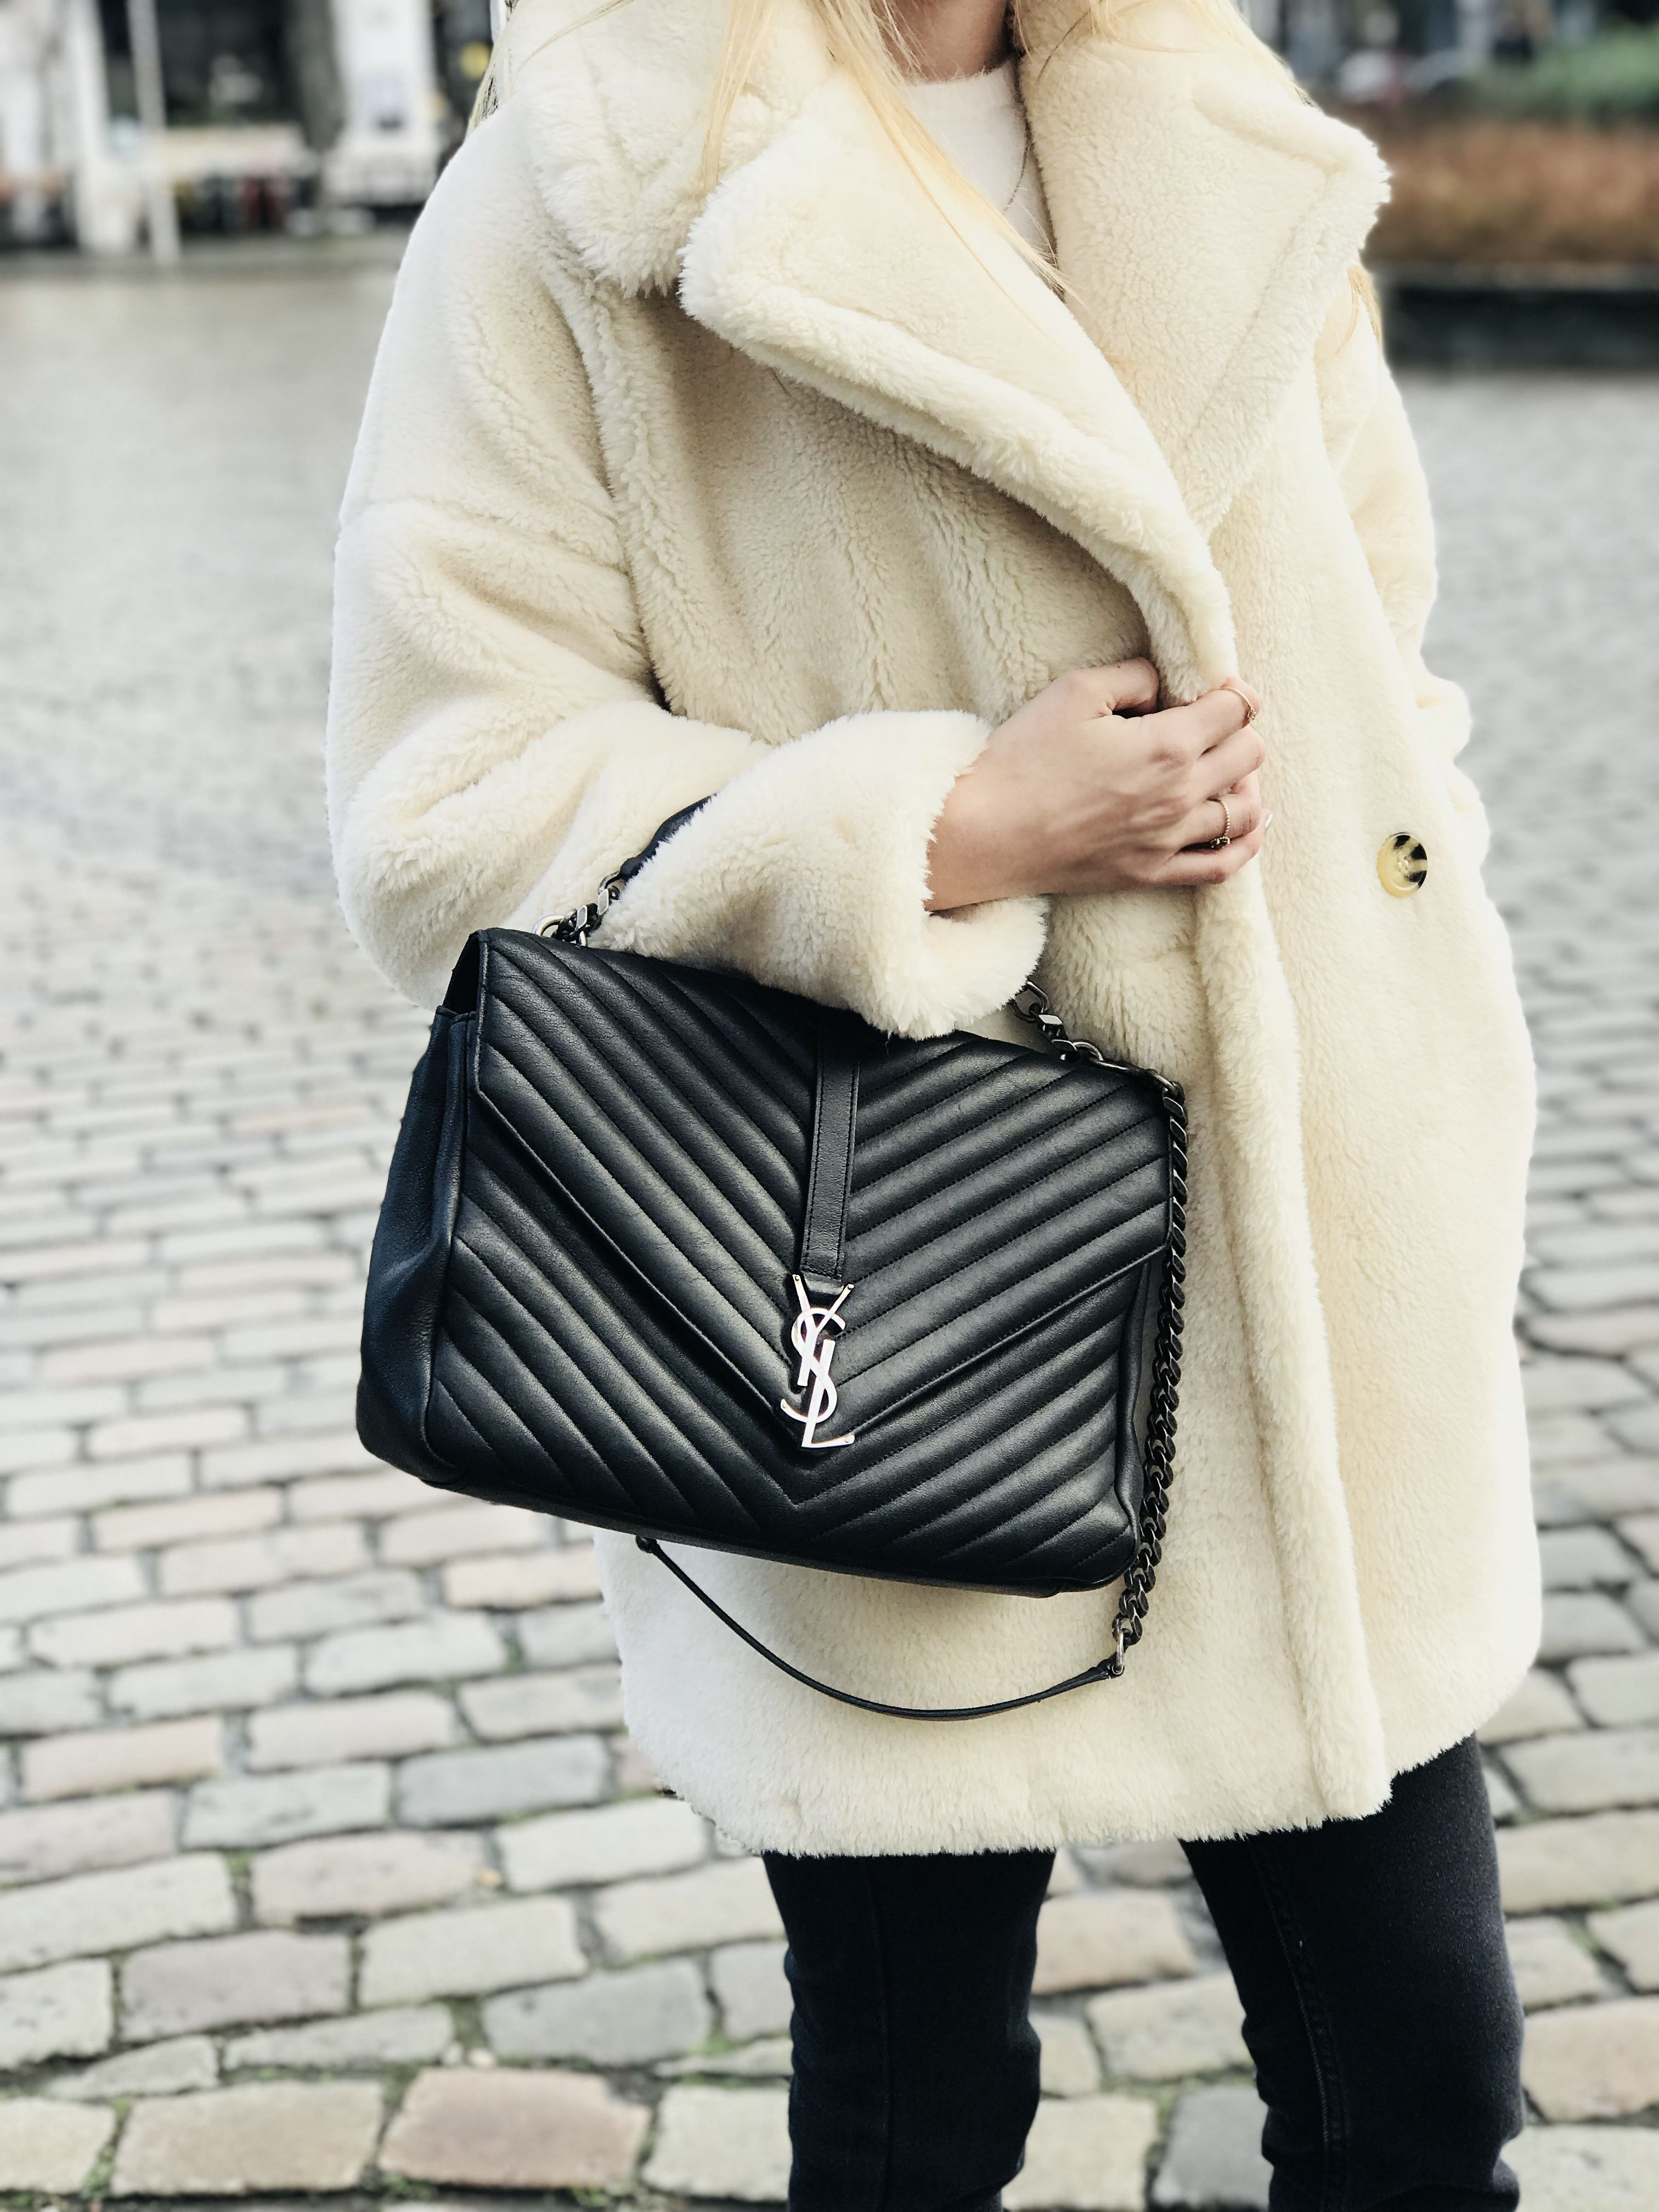 49bcc9f1930b Teddy Coats   Yves Saint Laurent bags for the win! We love this street  style... www.labellov.com